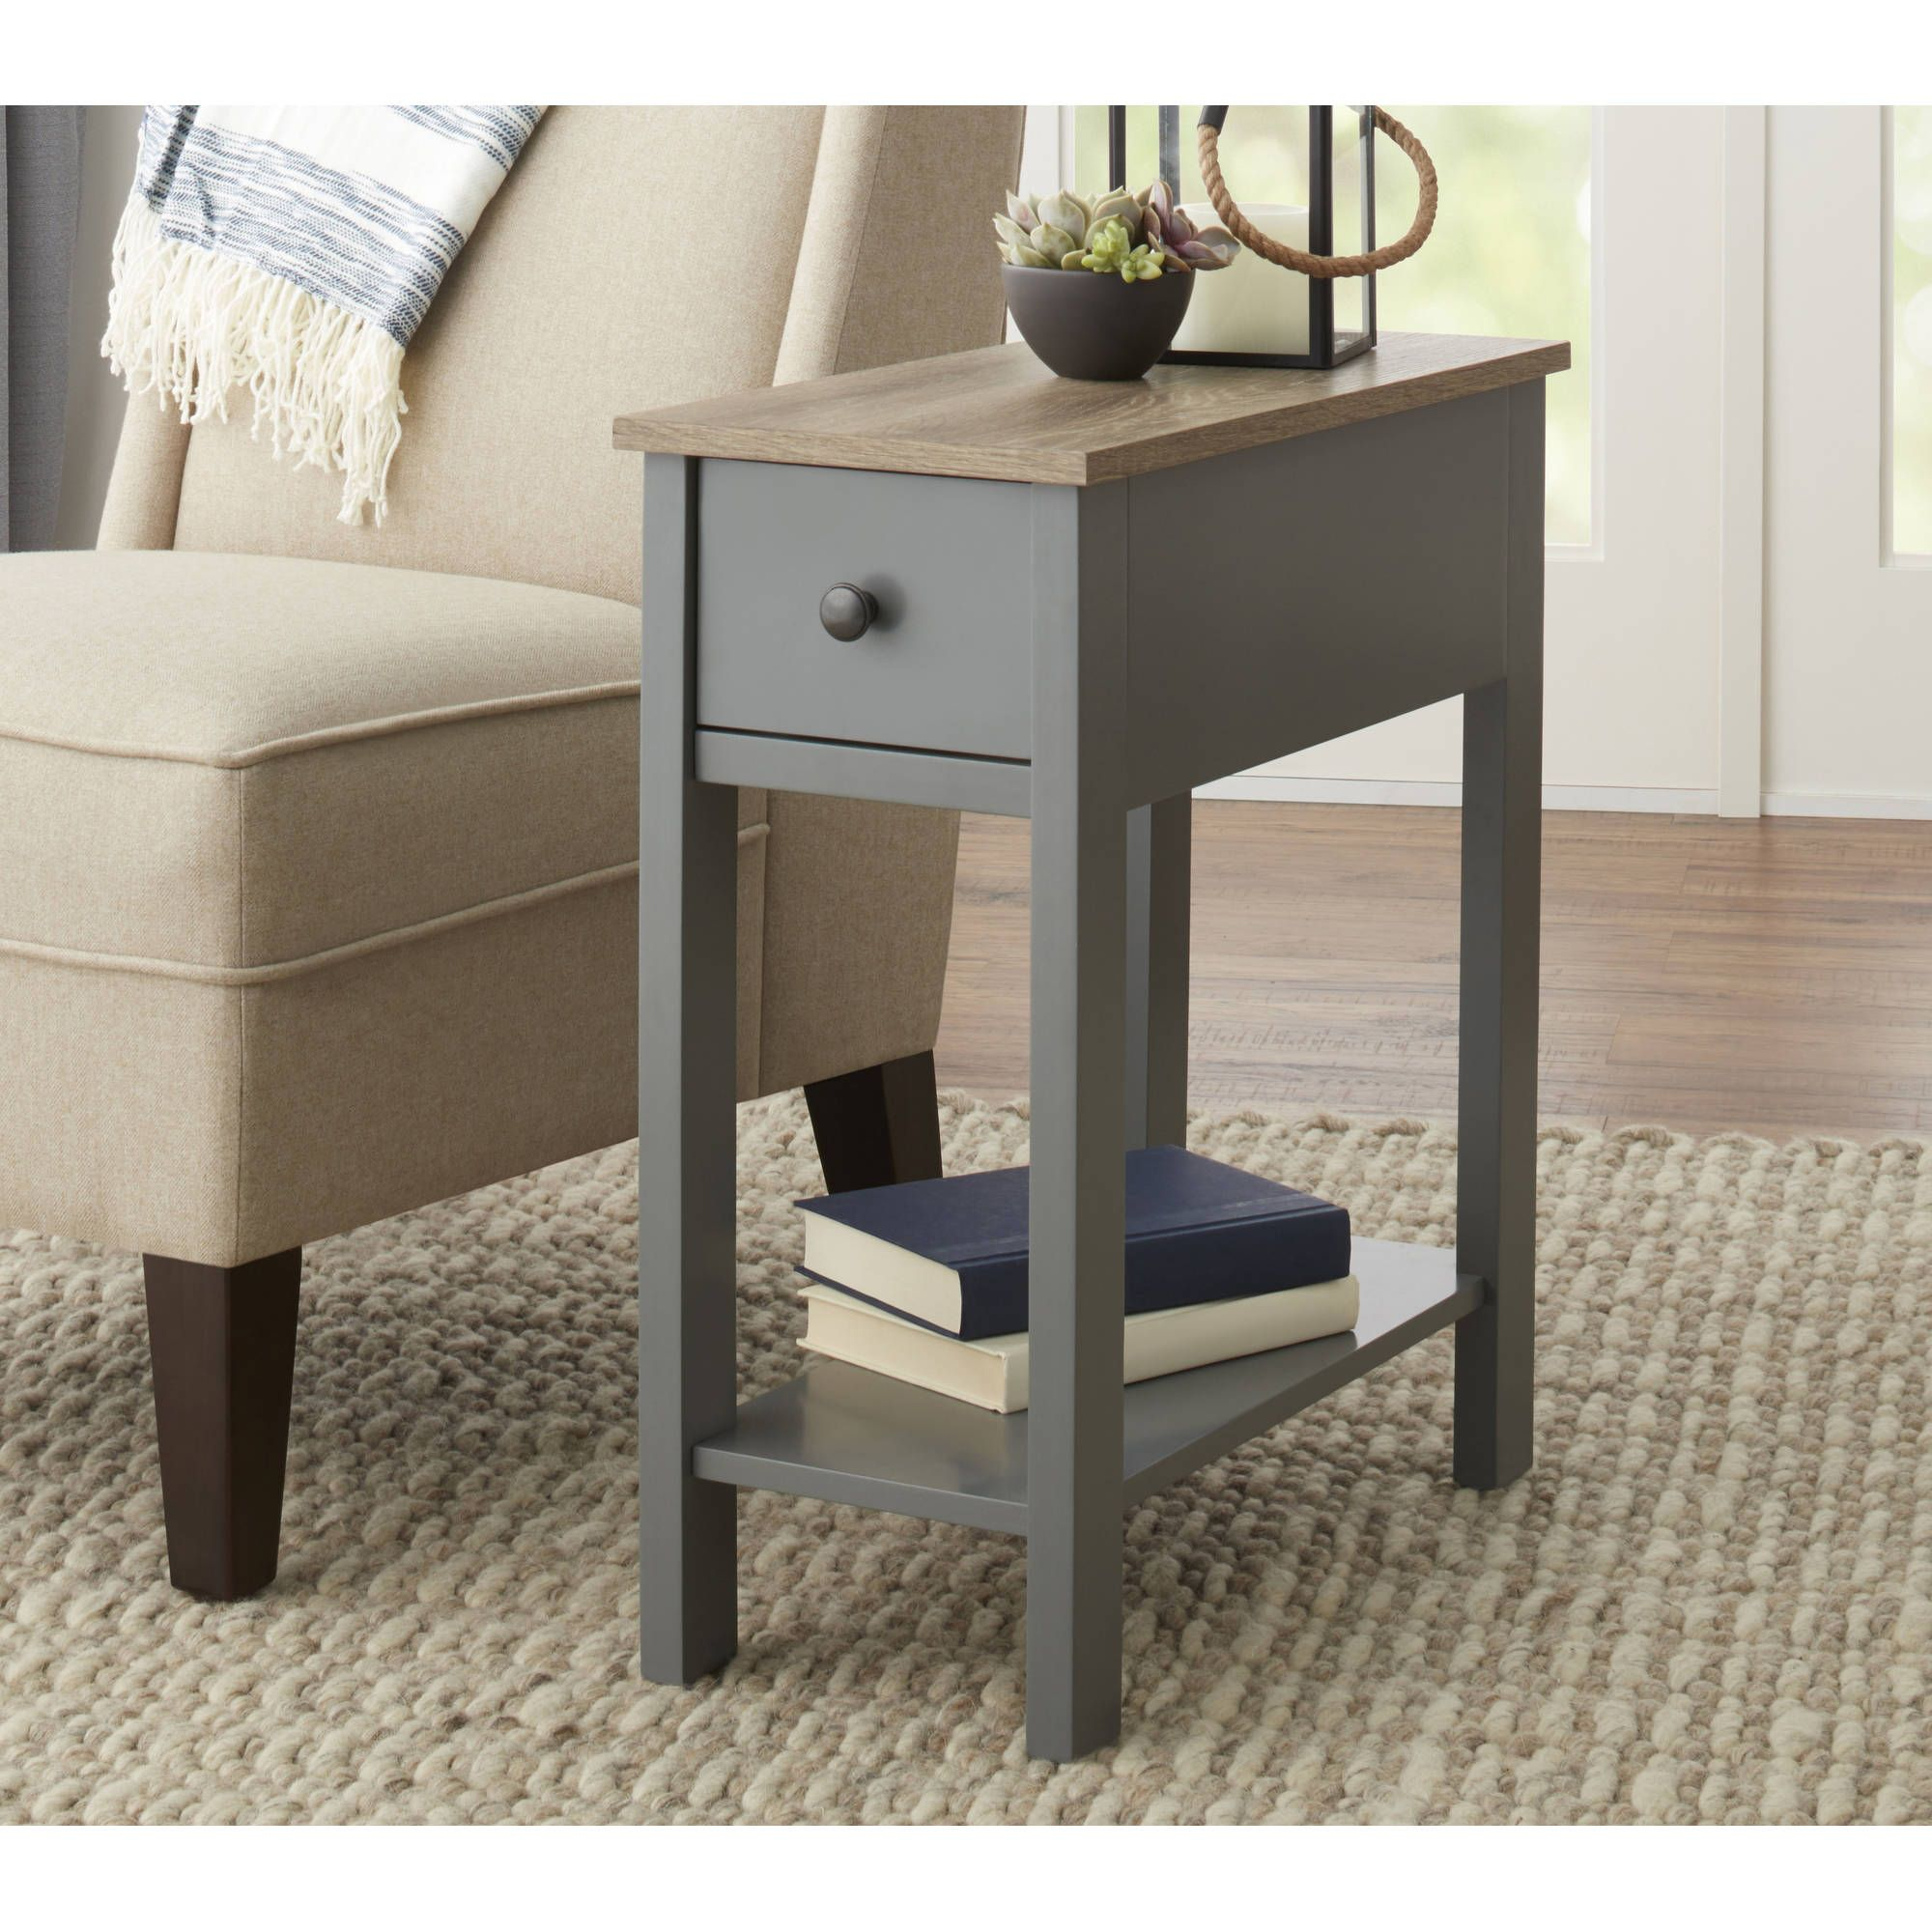 Home Solid wood coffee table, Farmhouse end tables, End